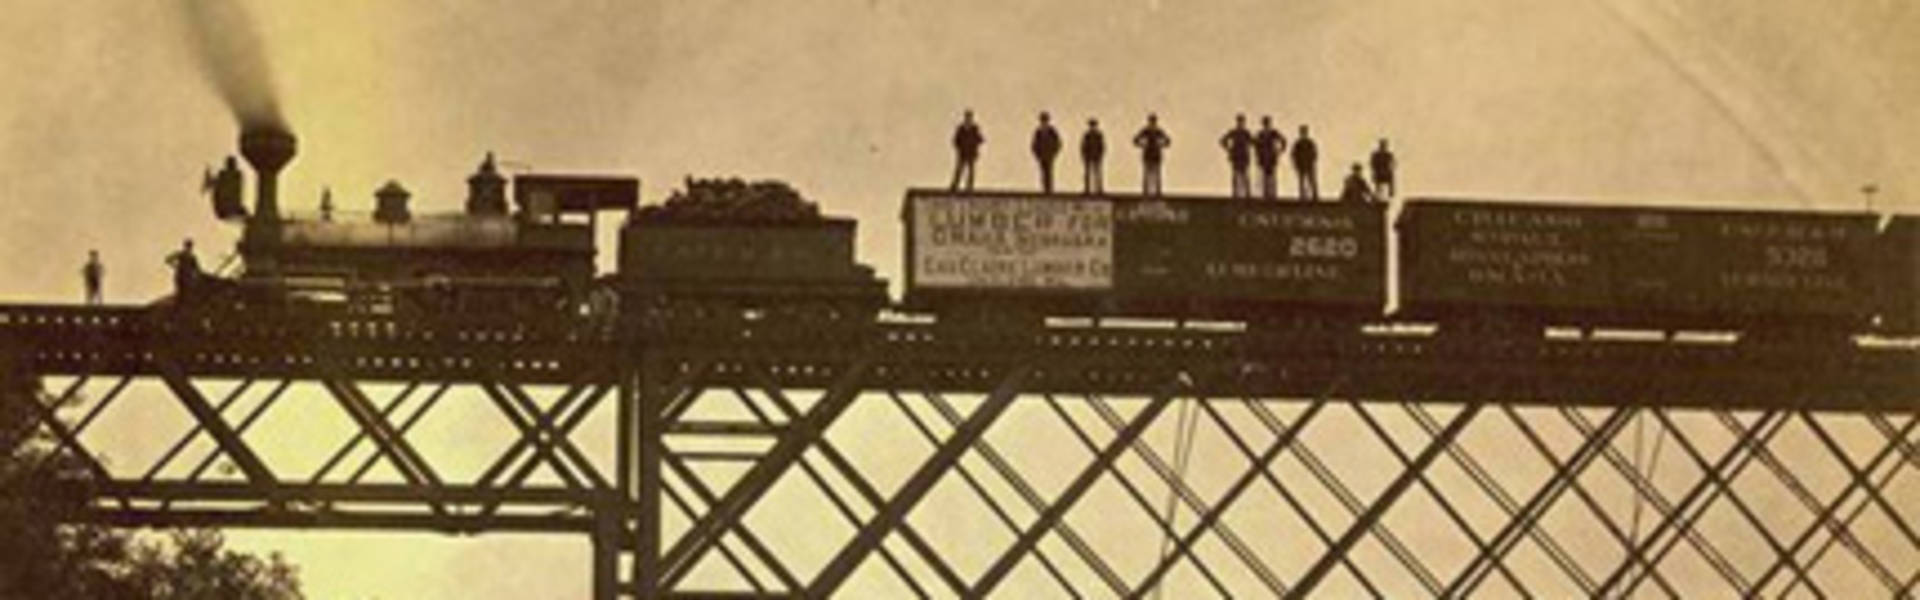 Chippewa Valley Lumber train crossing bridge in 1800s